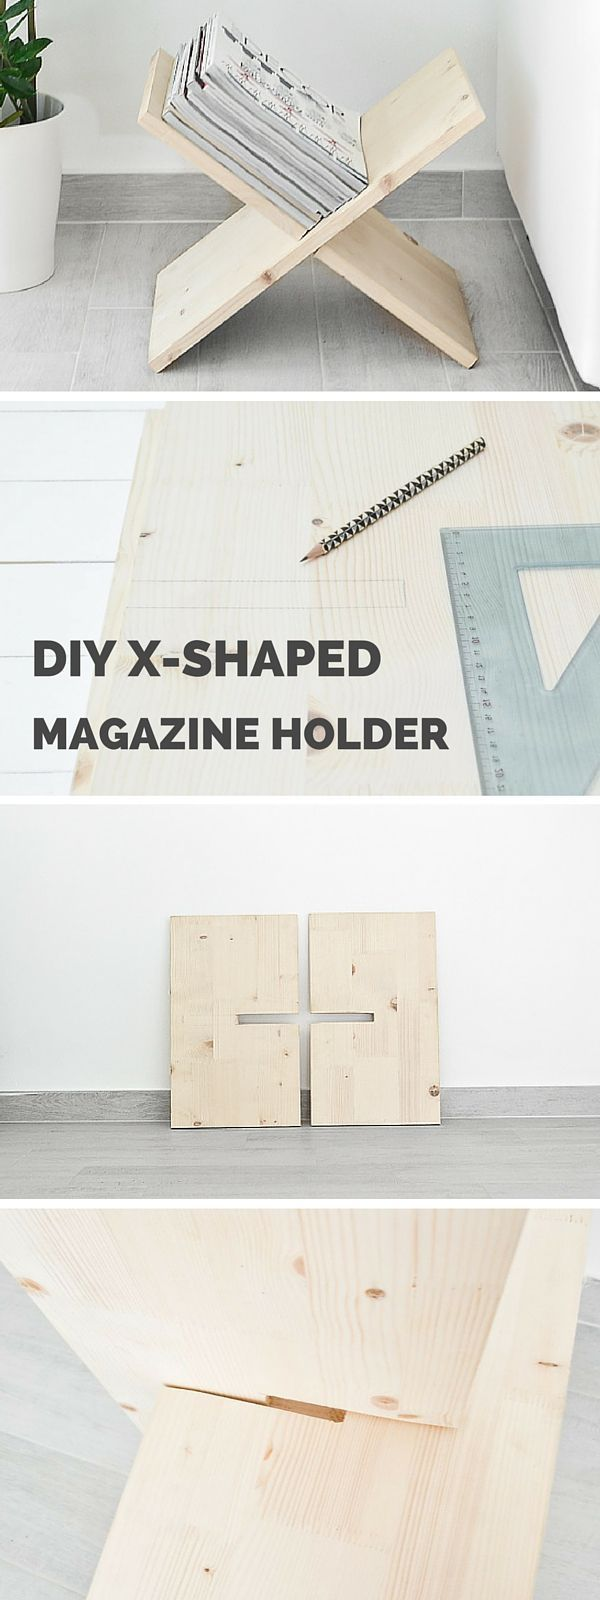 Check out the tutorial: #DIY X-Shaped Magazine Holder #crafts #homedecor More